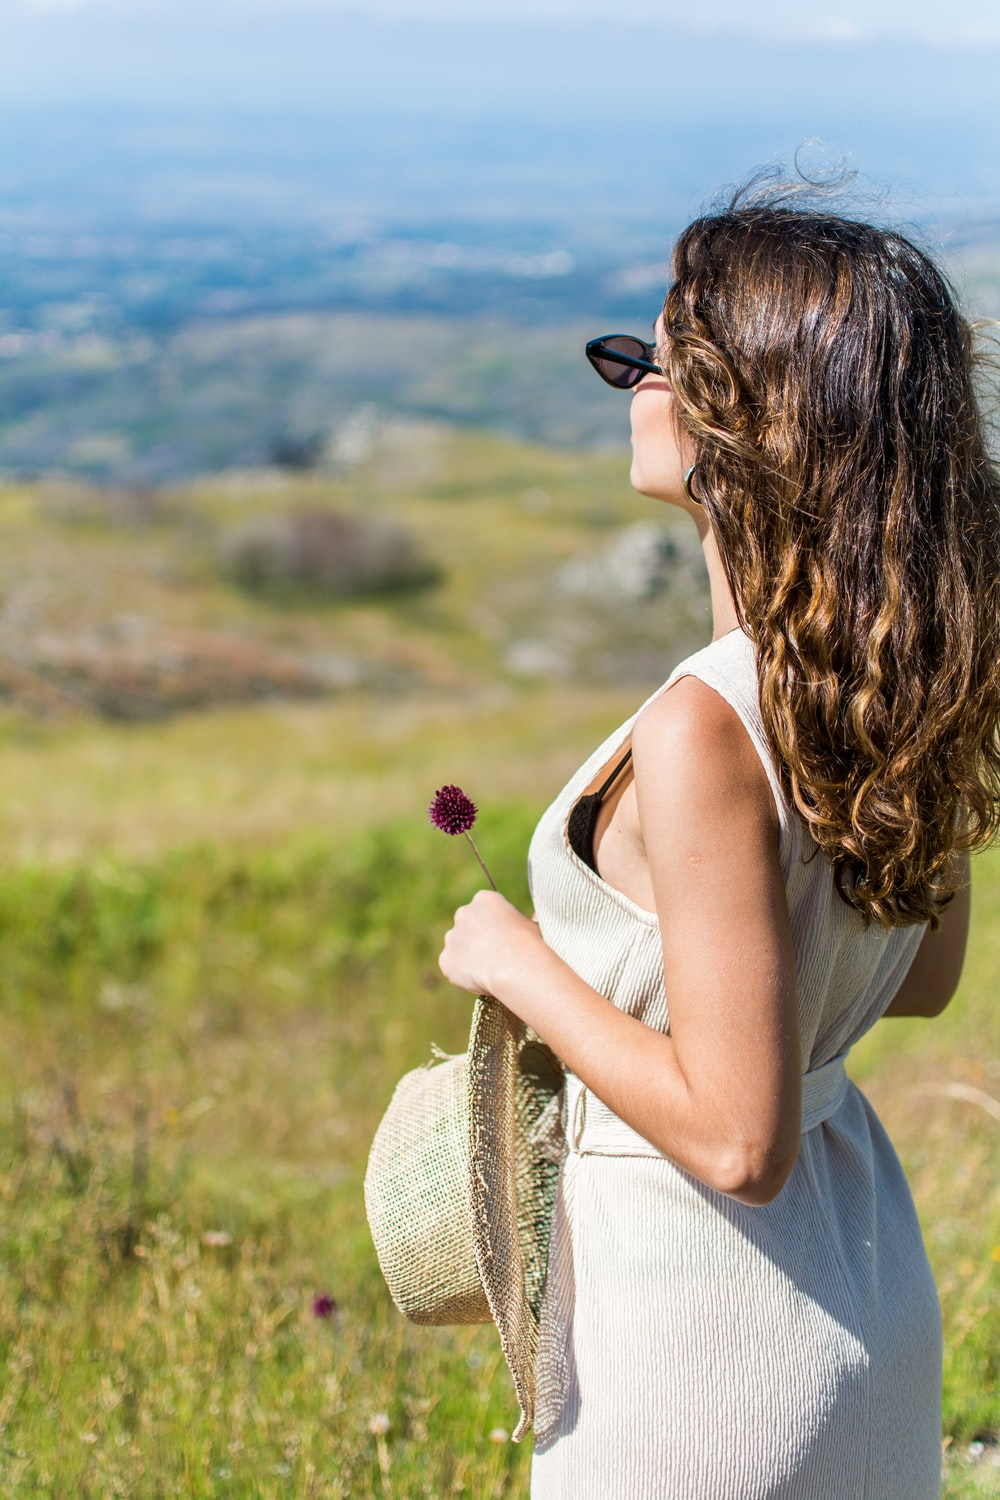 woman standing on green grass near mountain during daytime